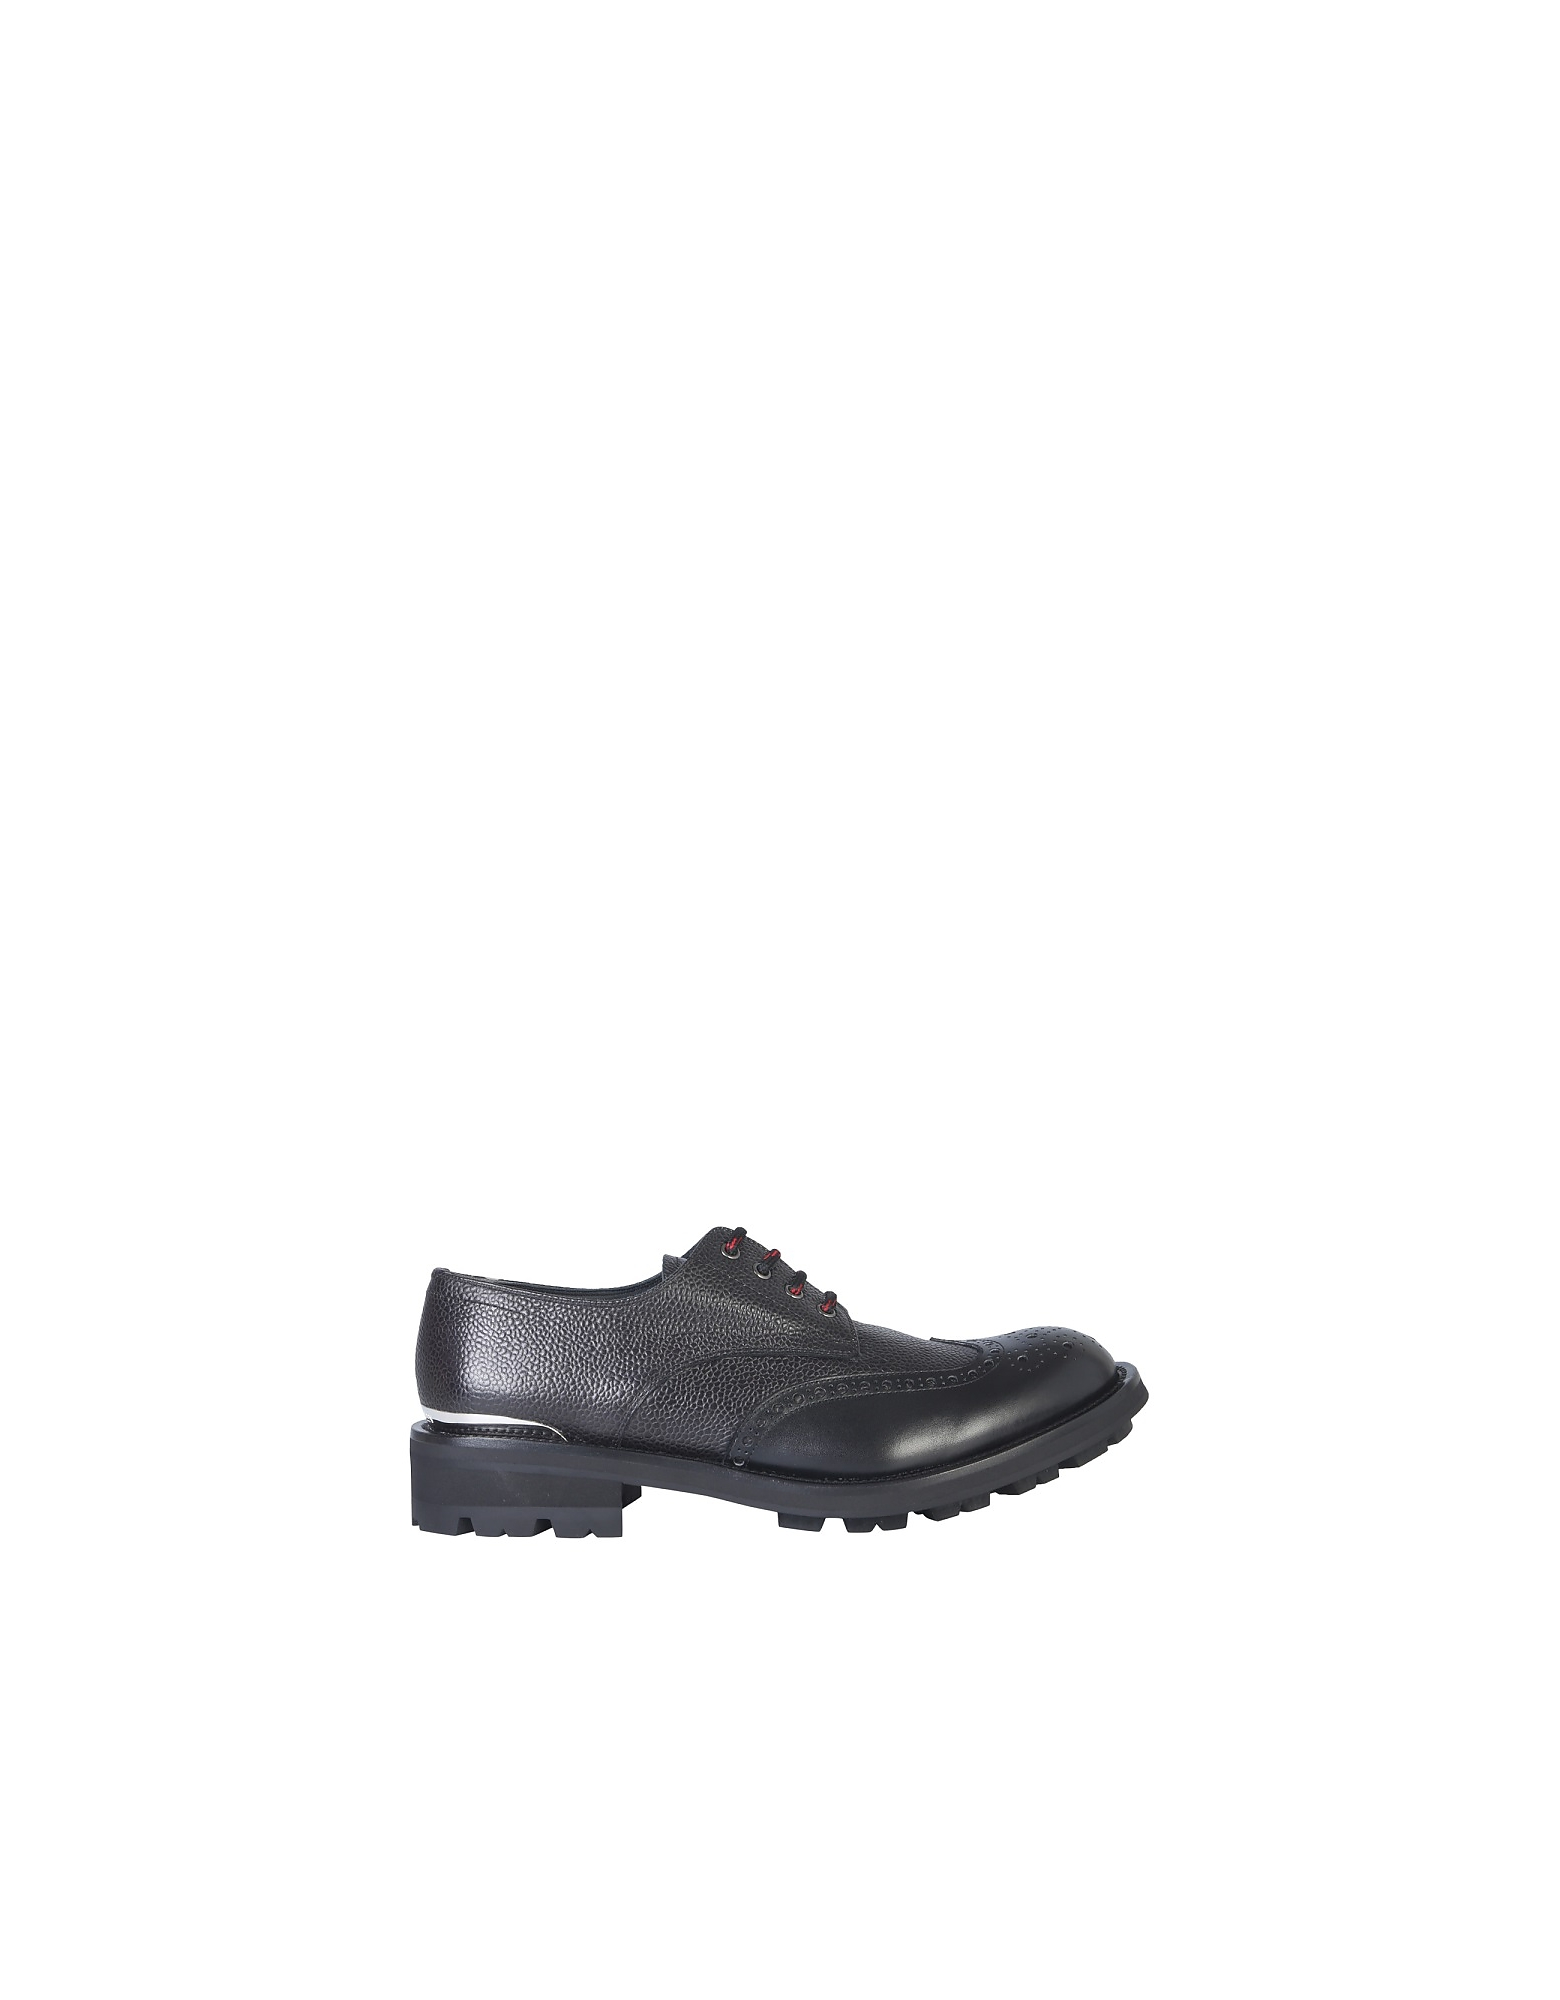 Alexander McQueen Designer Shoes, Black Embossed Leather Men's Lace-Up Derby Shoes